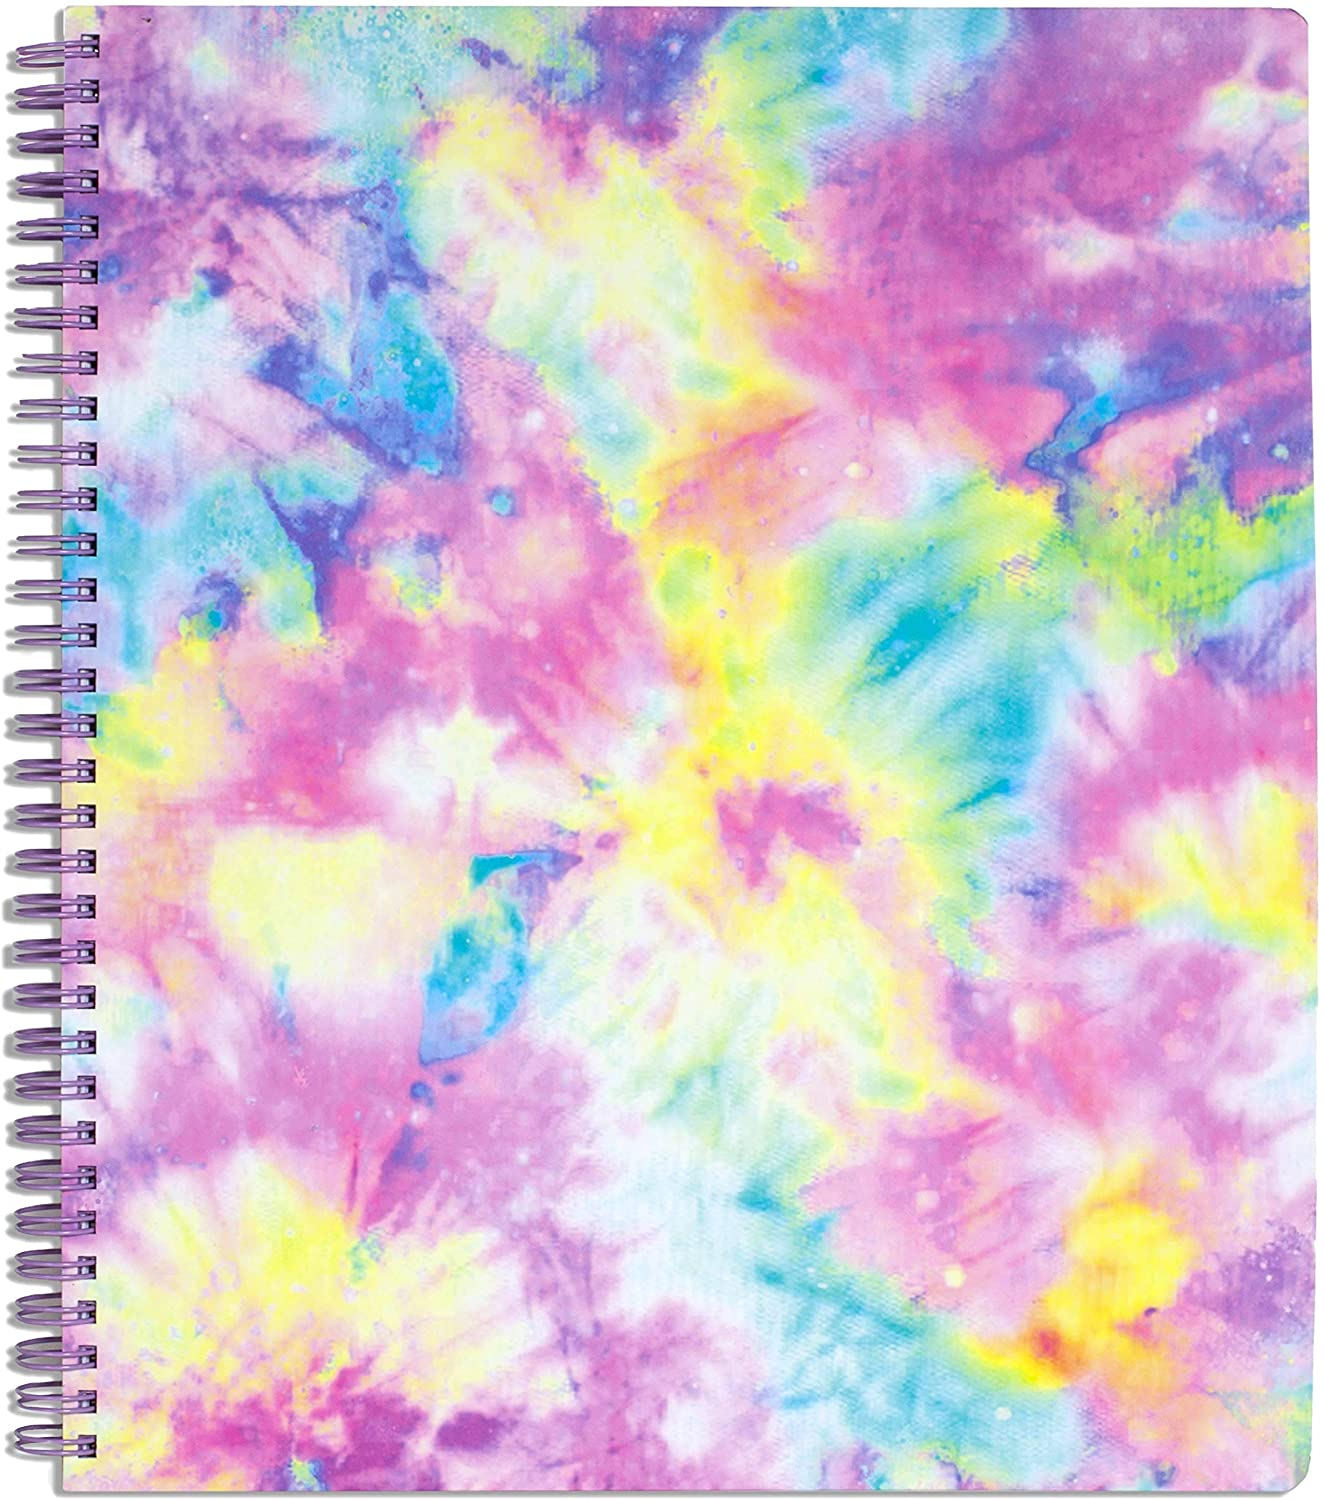 """Steel Mill & Co Cute Large Spiral Notebook College Ruled, 11"""" x 9.5"""" with Durable Hardcover and 160 Lined Pages, Tie Dye : Office Products"""